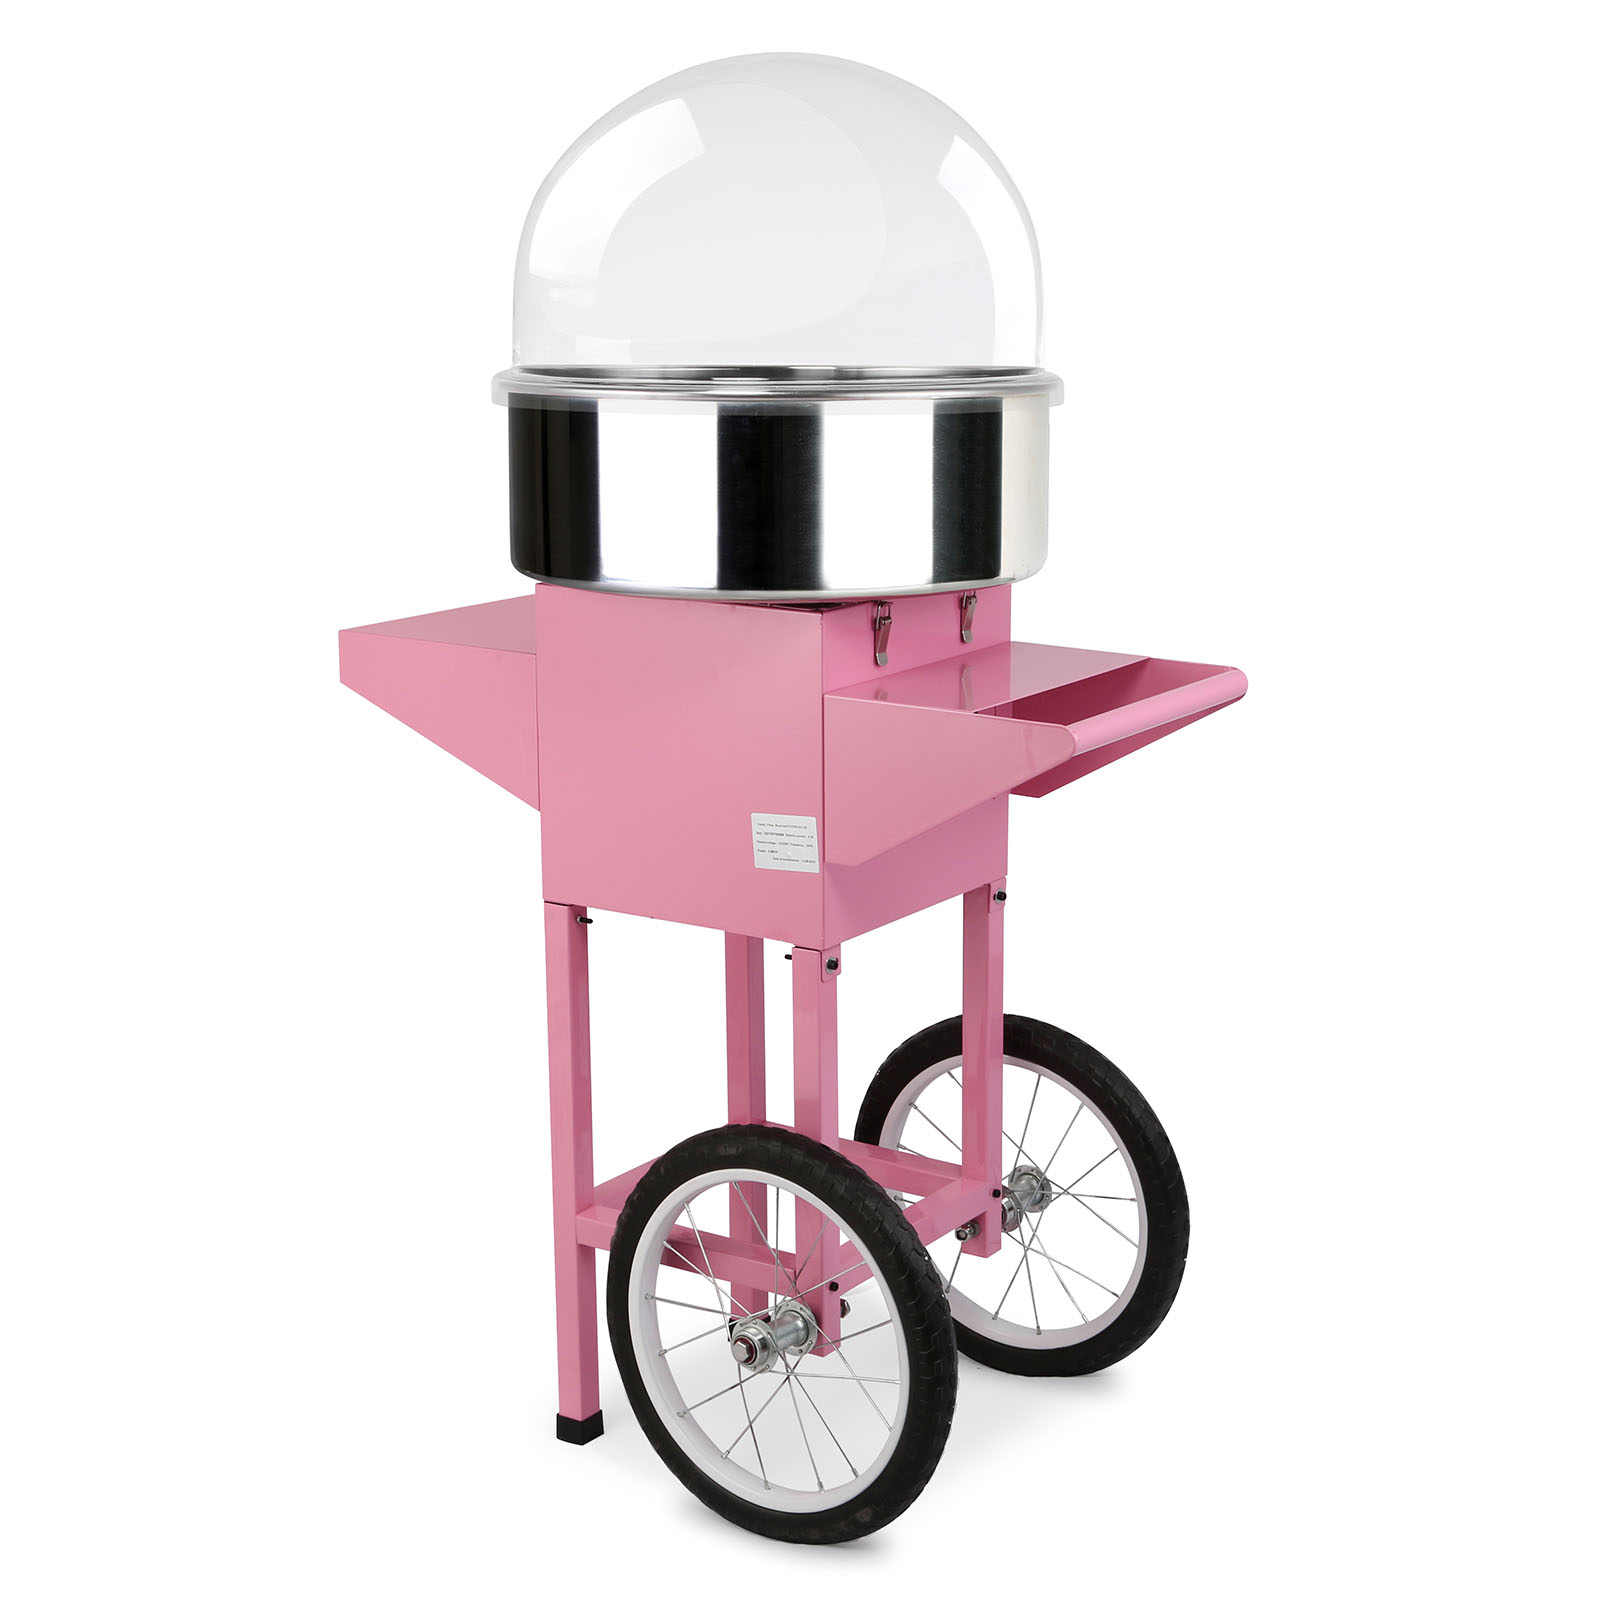 Pro Bubble Cover Protection 52cm Cupola For Candy Floss Macchina Zucchero Filato